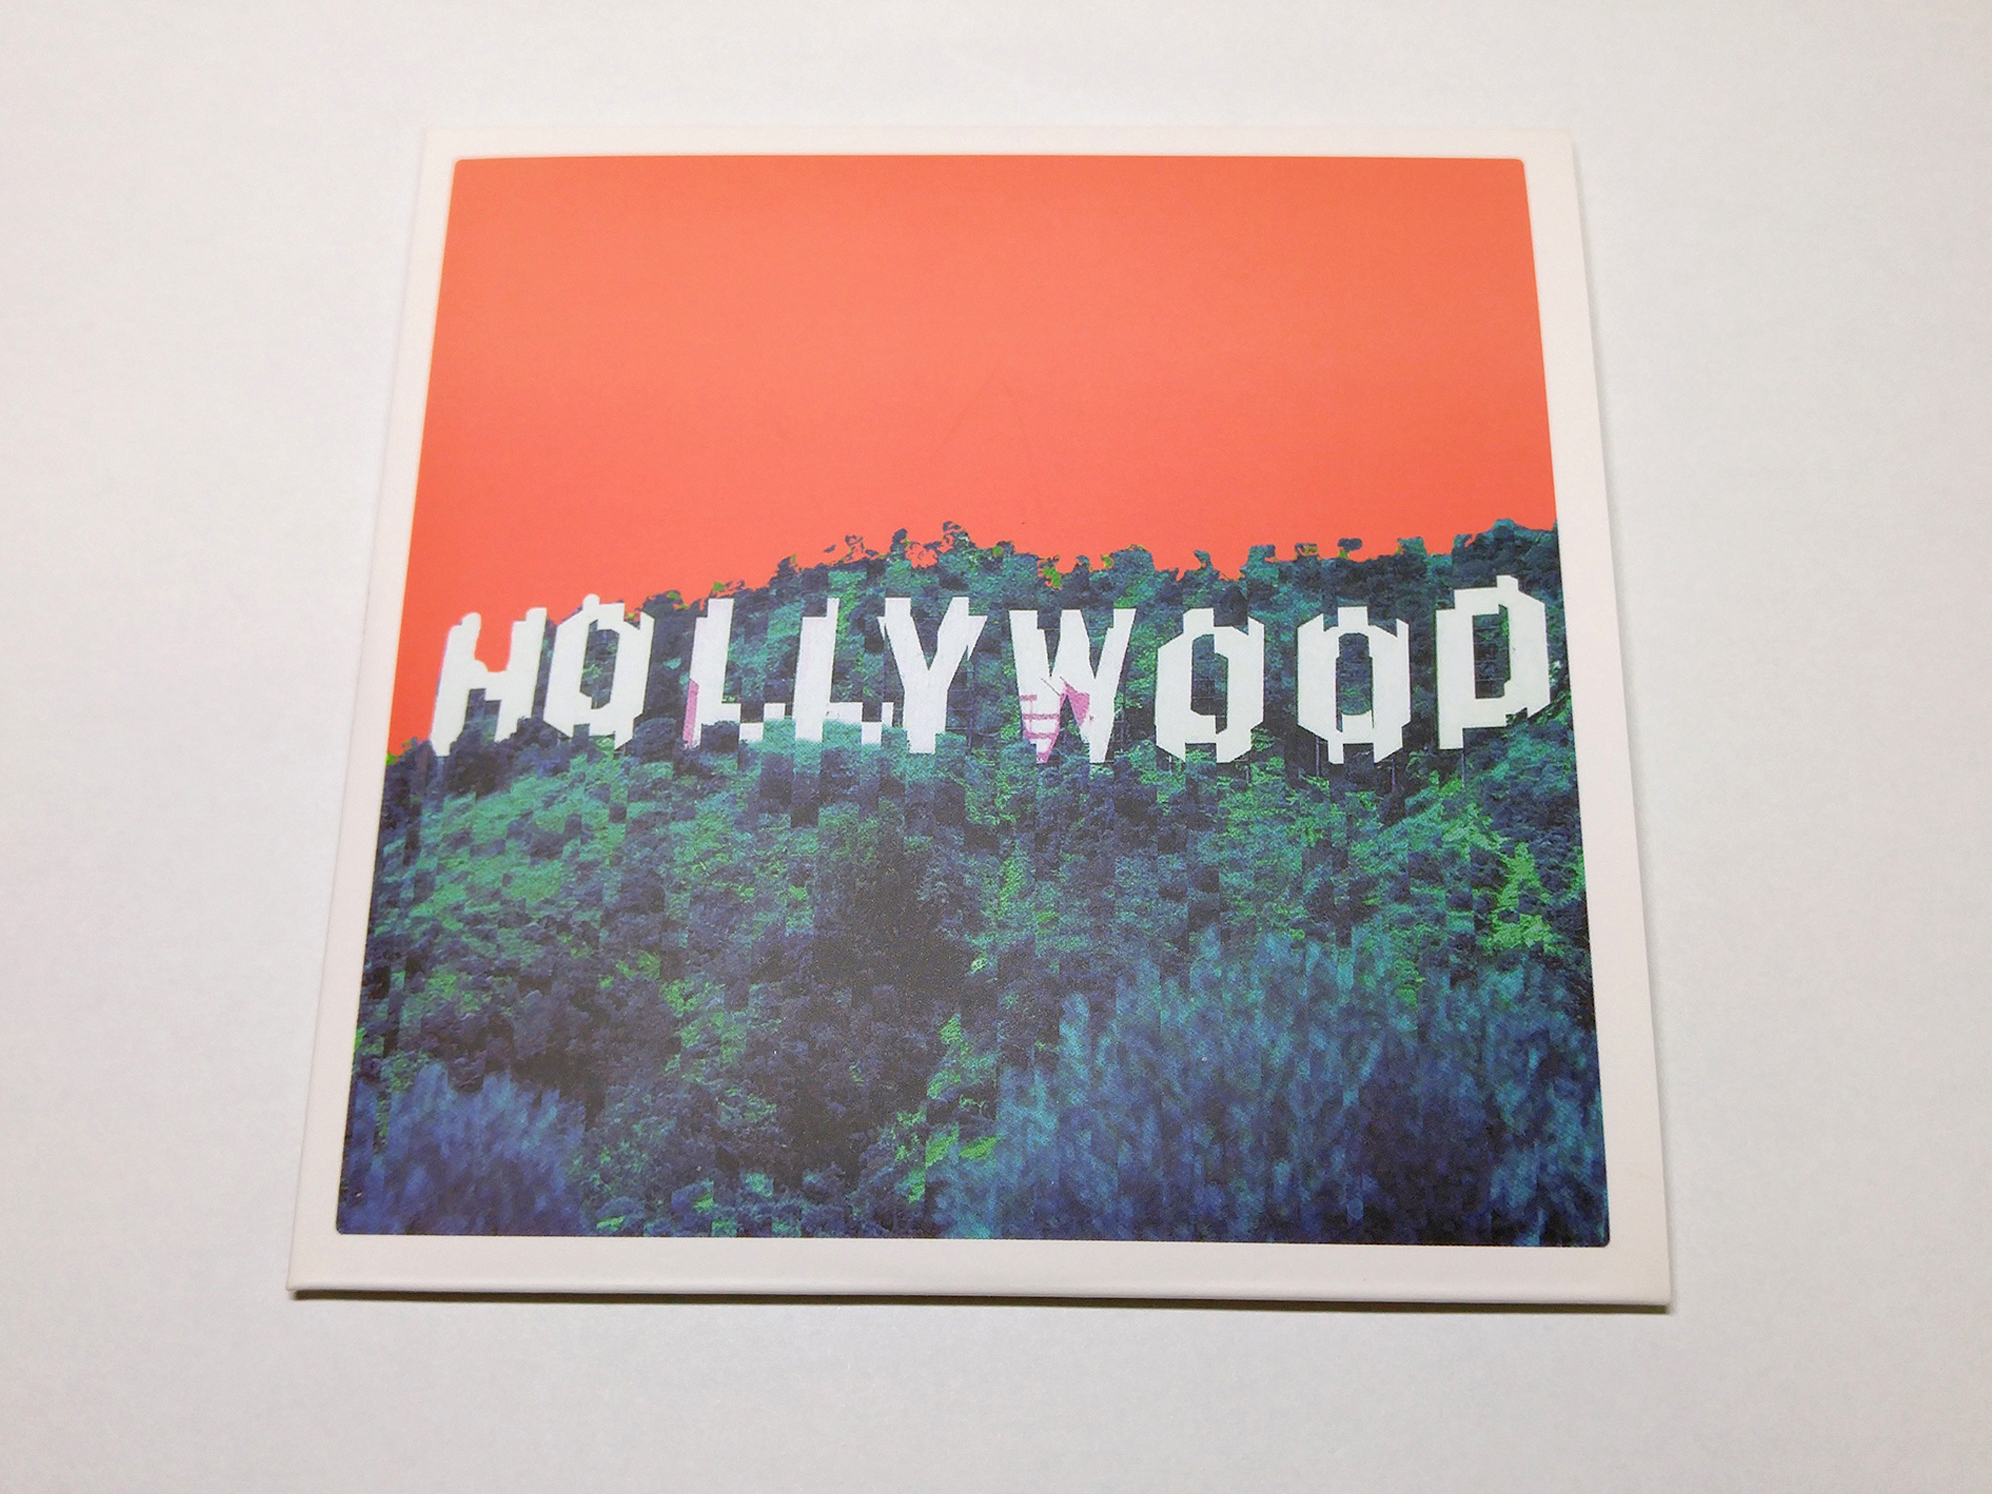 (single) Hollywood - 검정치마